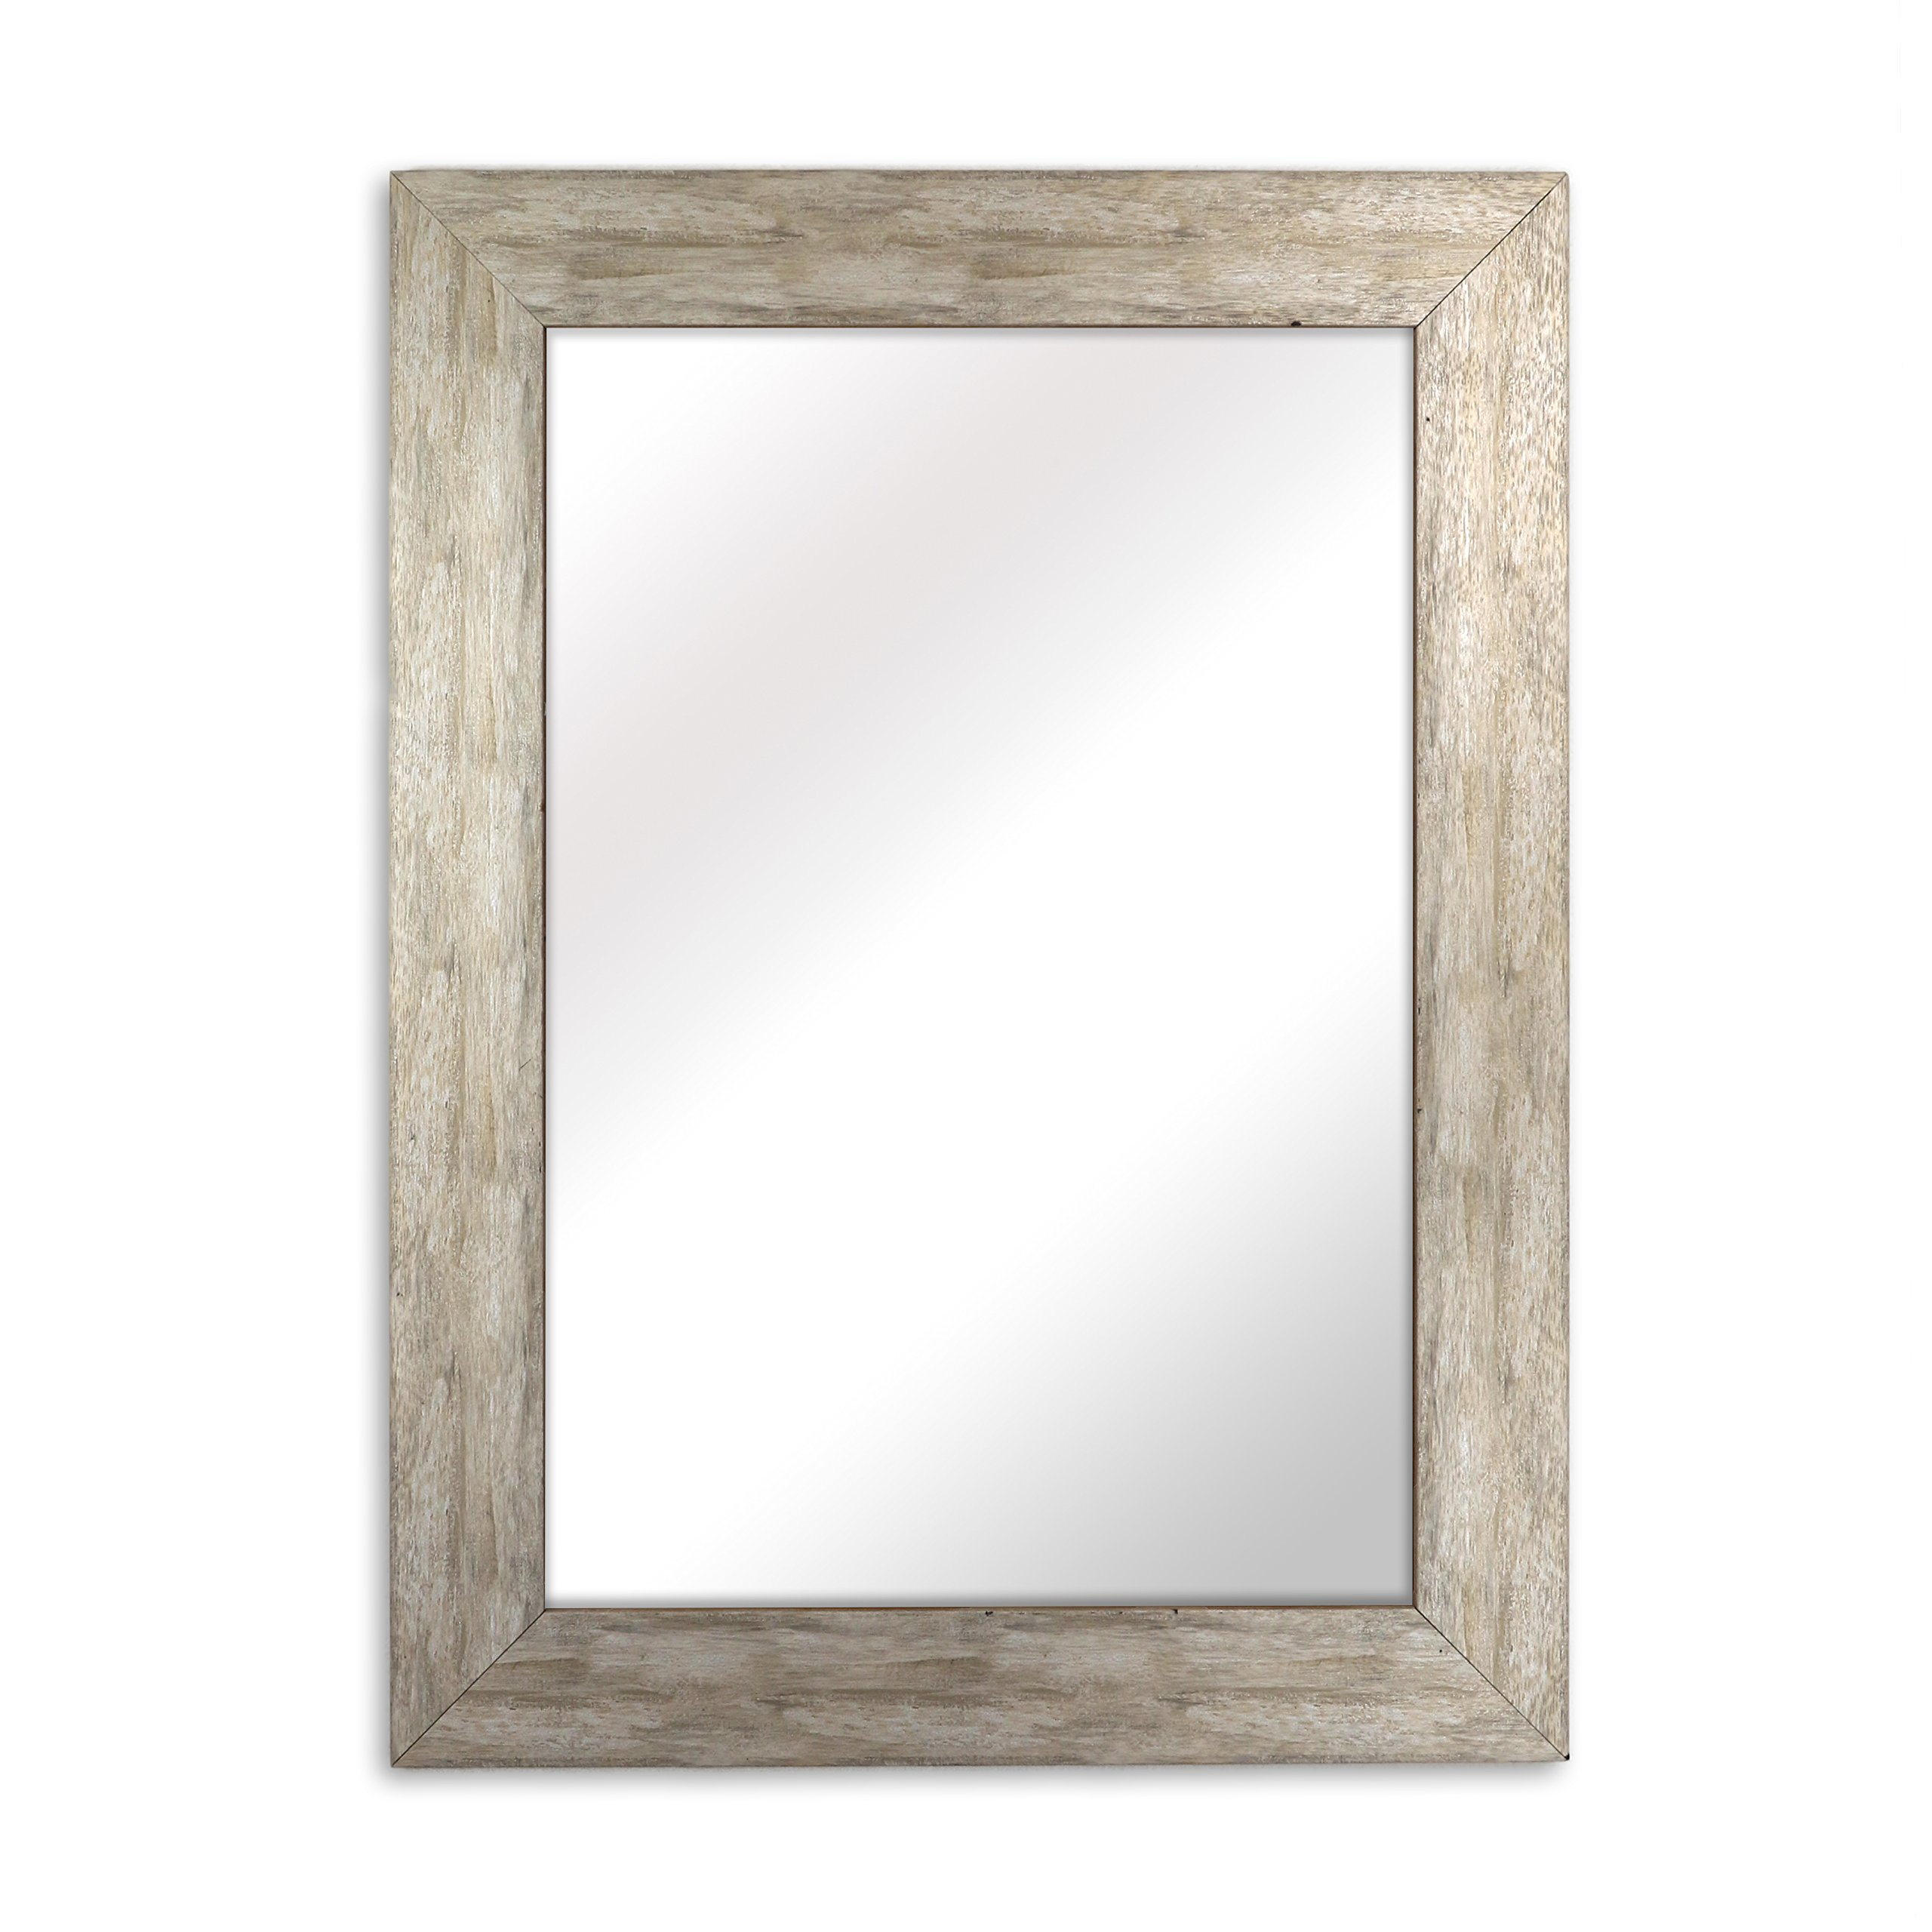 Raphael Rozen - Elegant - Modern - Classic - Vintage - Rustic - Hanging Framed Wall Mounted Mirror, Distressed Wood Finish, Gray - White Color